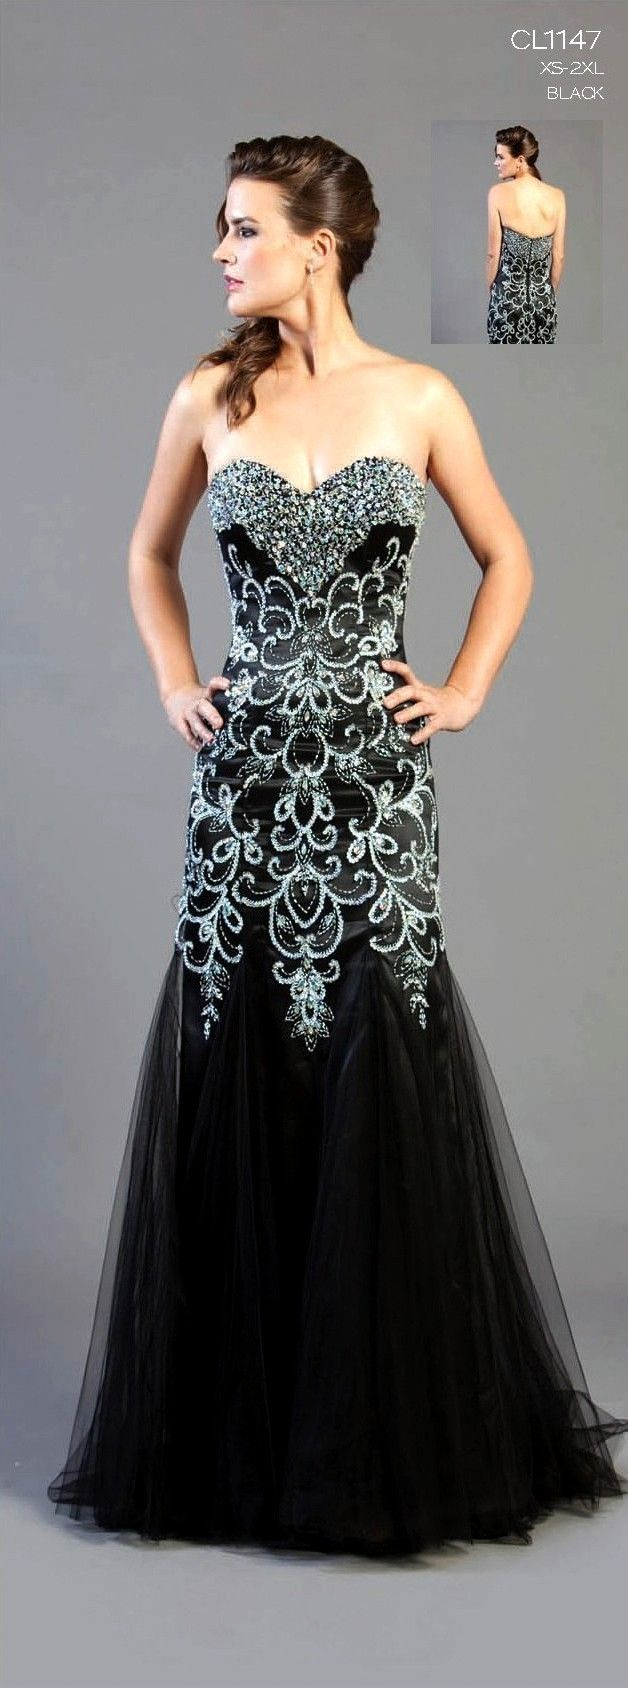 Quirky Prom Dress